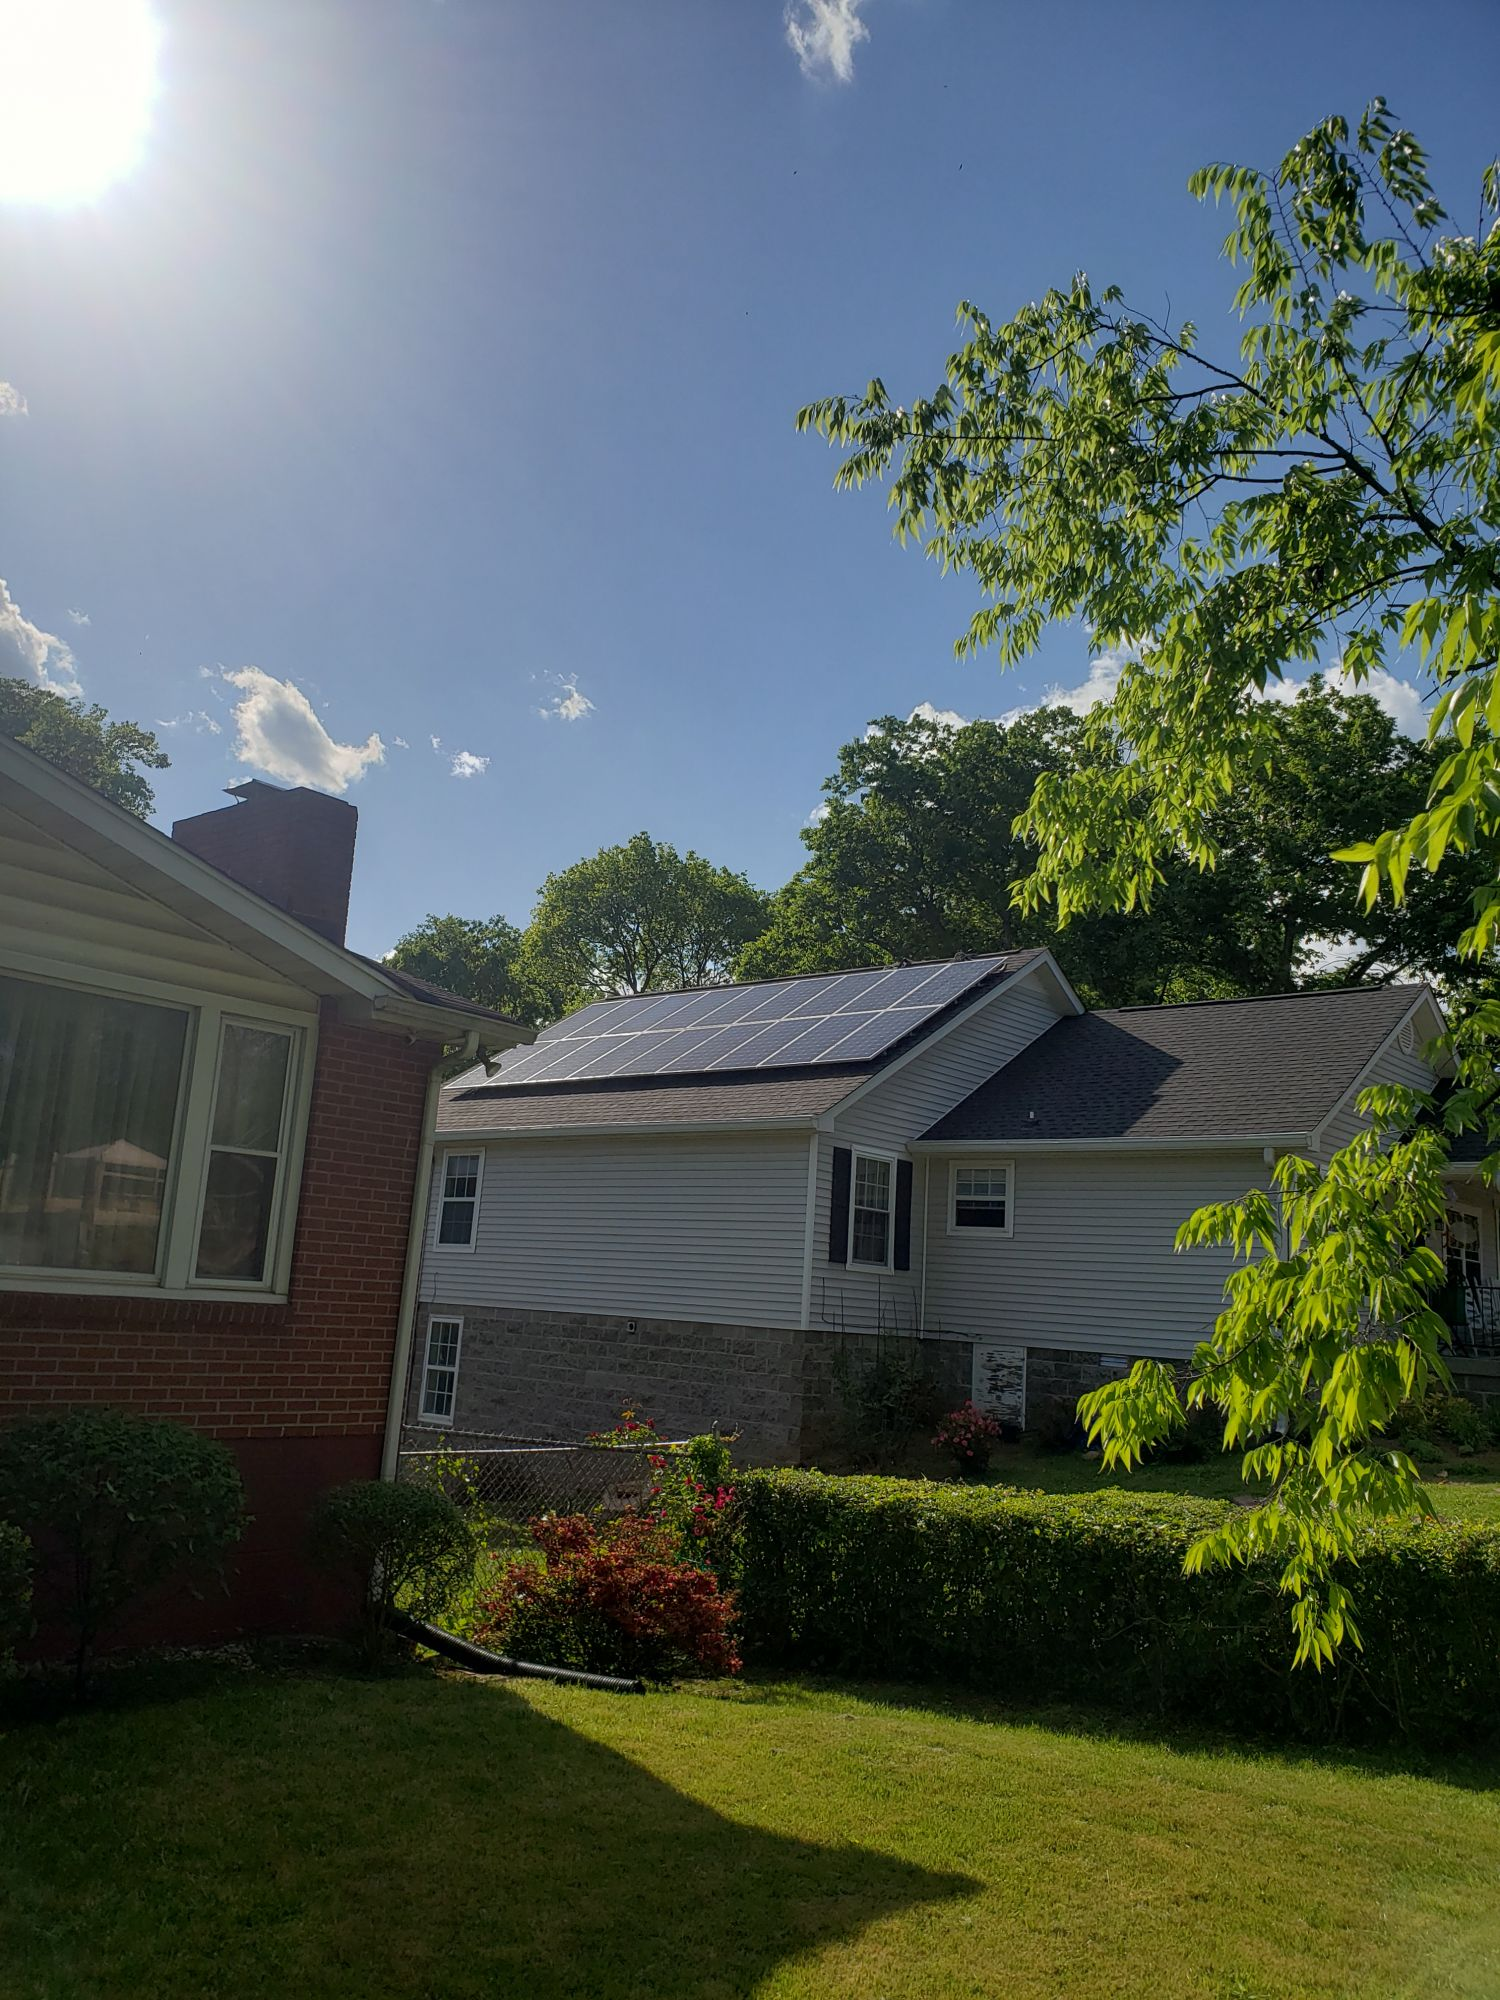 Completed Bordeaux Solar Installation